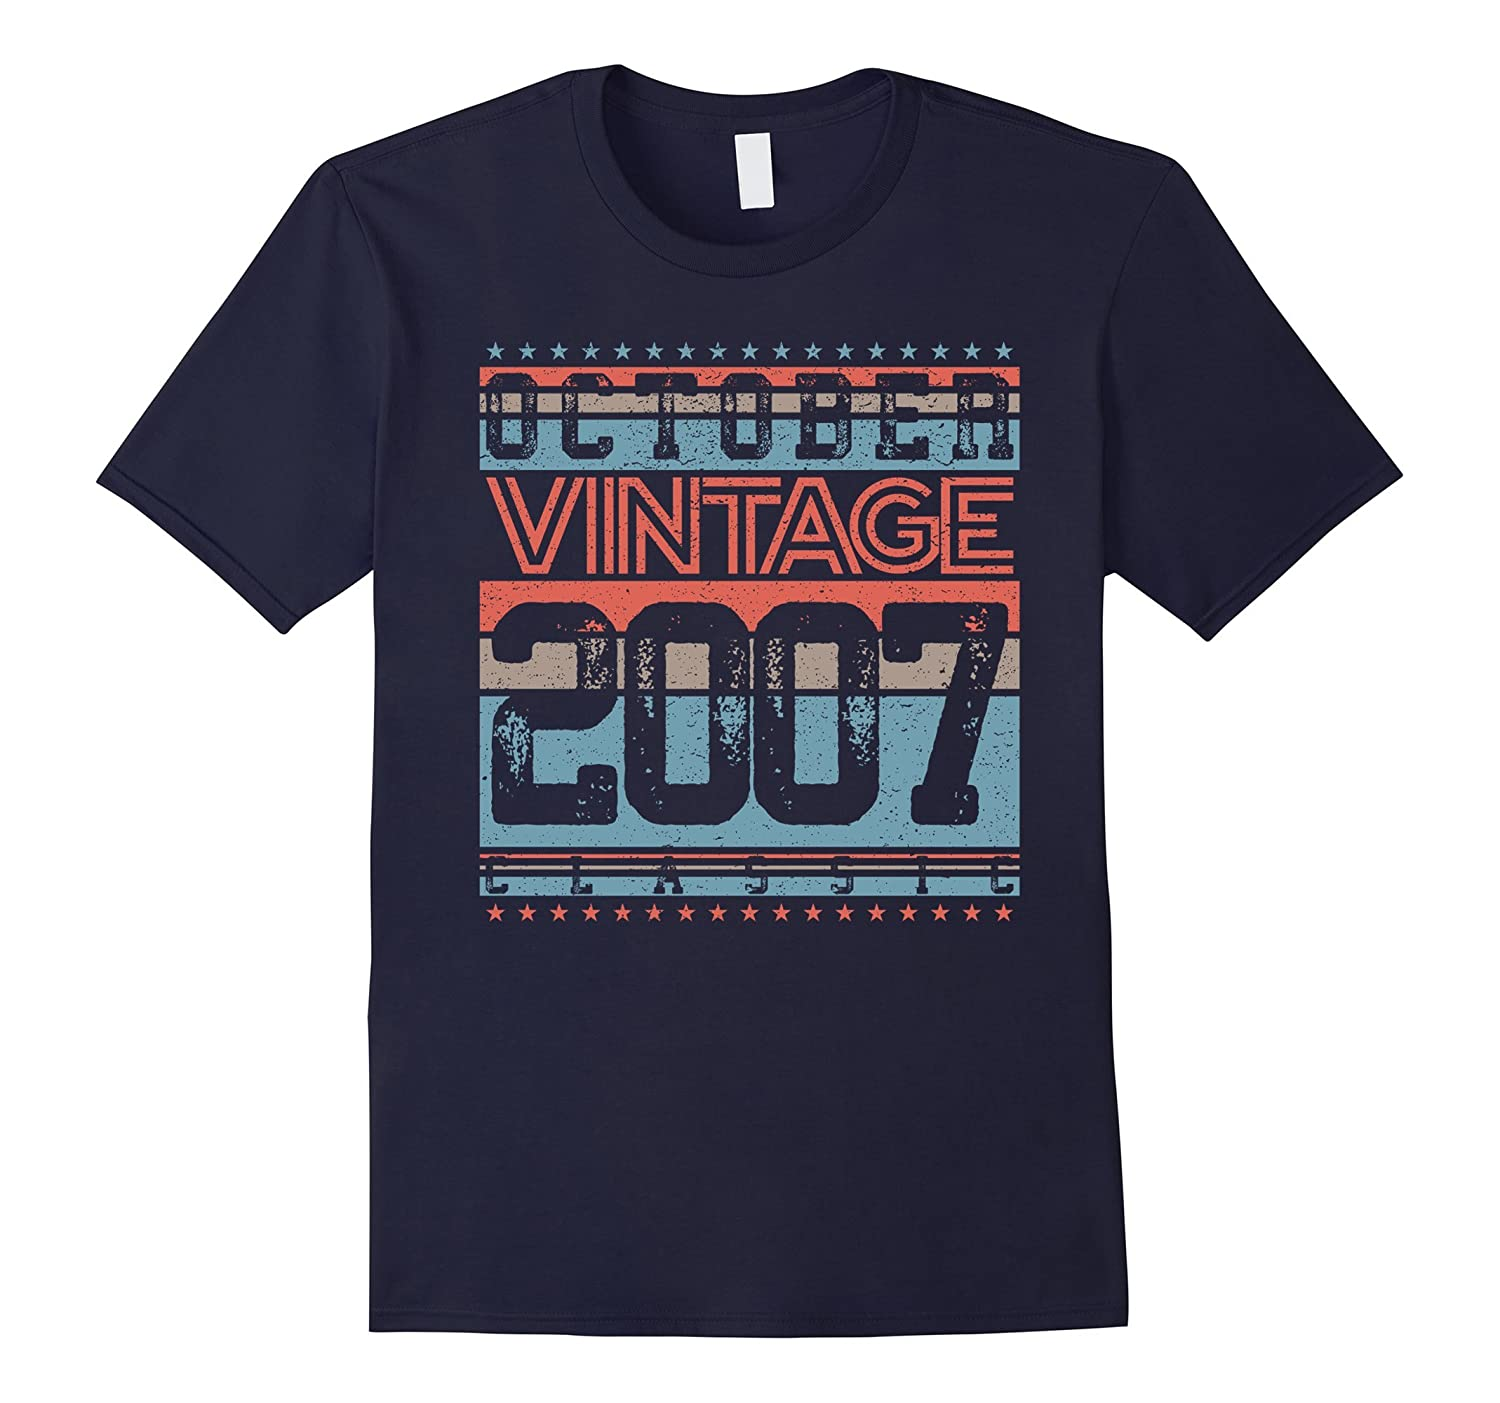 October 2007 10 Years Old Birthday Gift T-Shirt Vintage-TJ